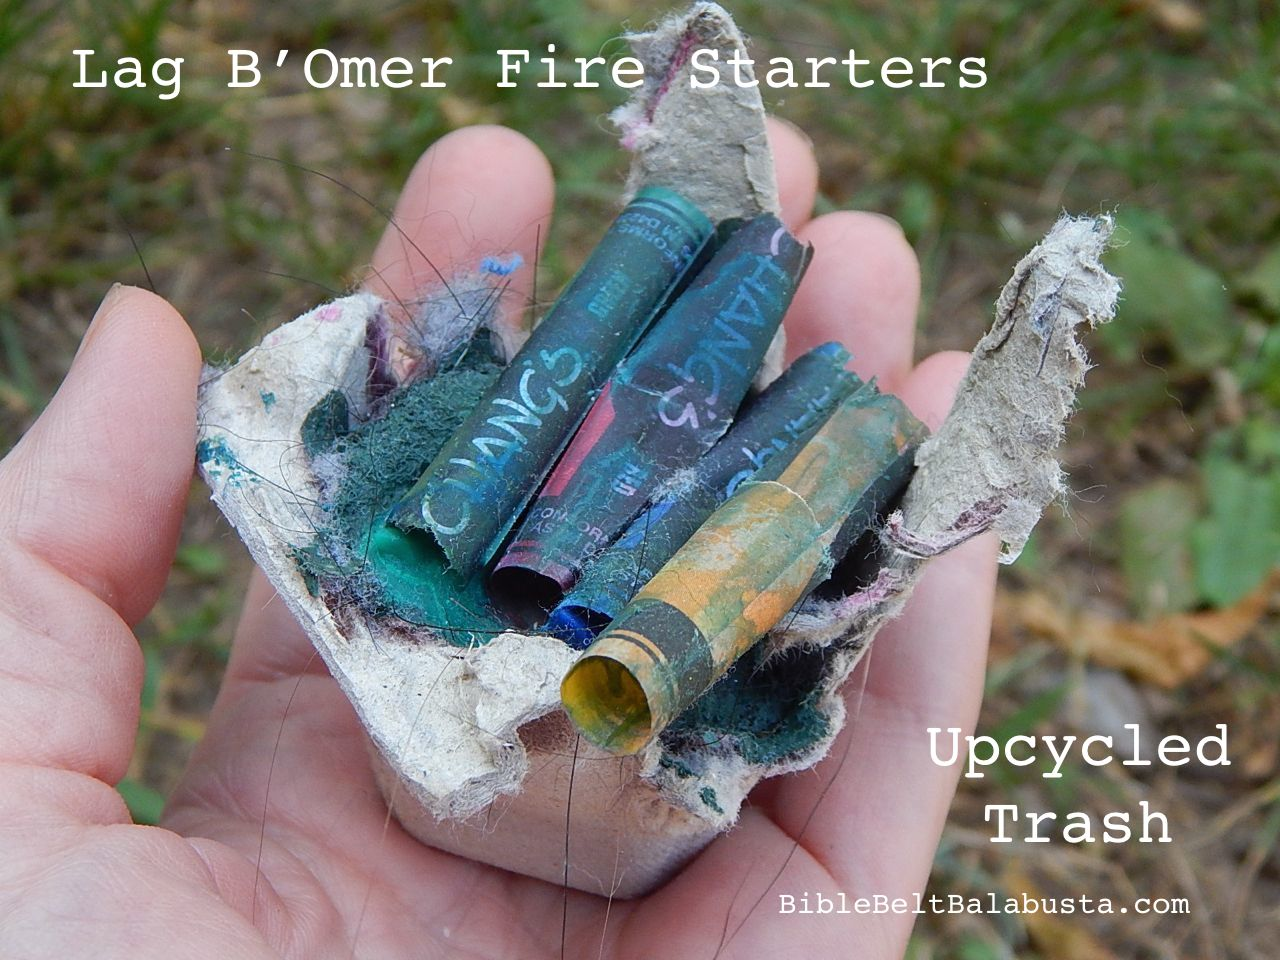 dryer lint fire starters fun with trash for lag b omer bible